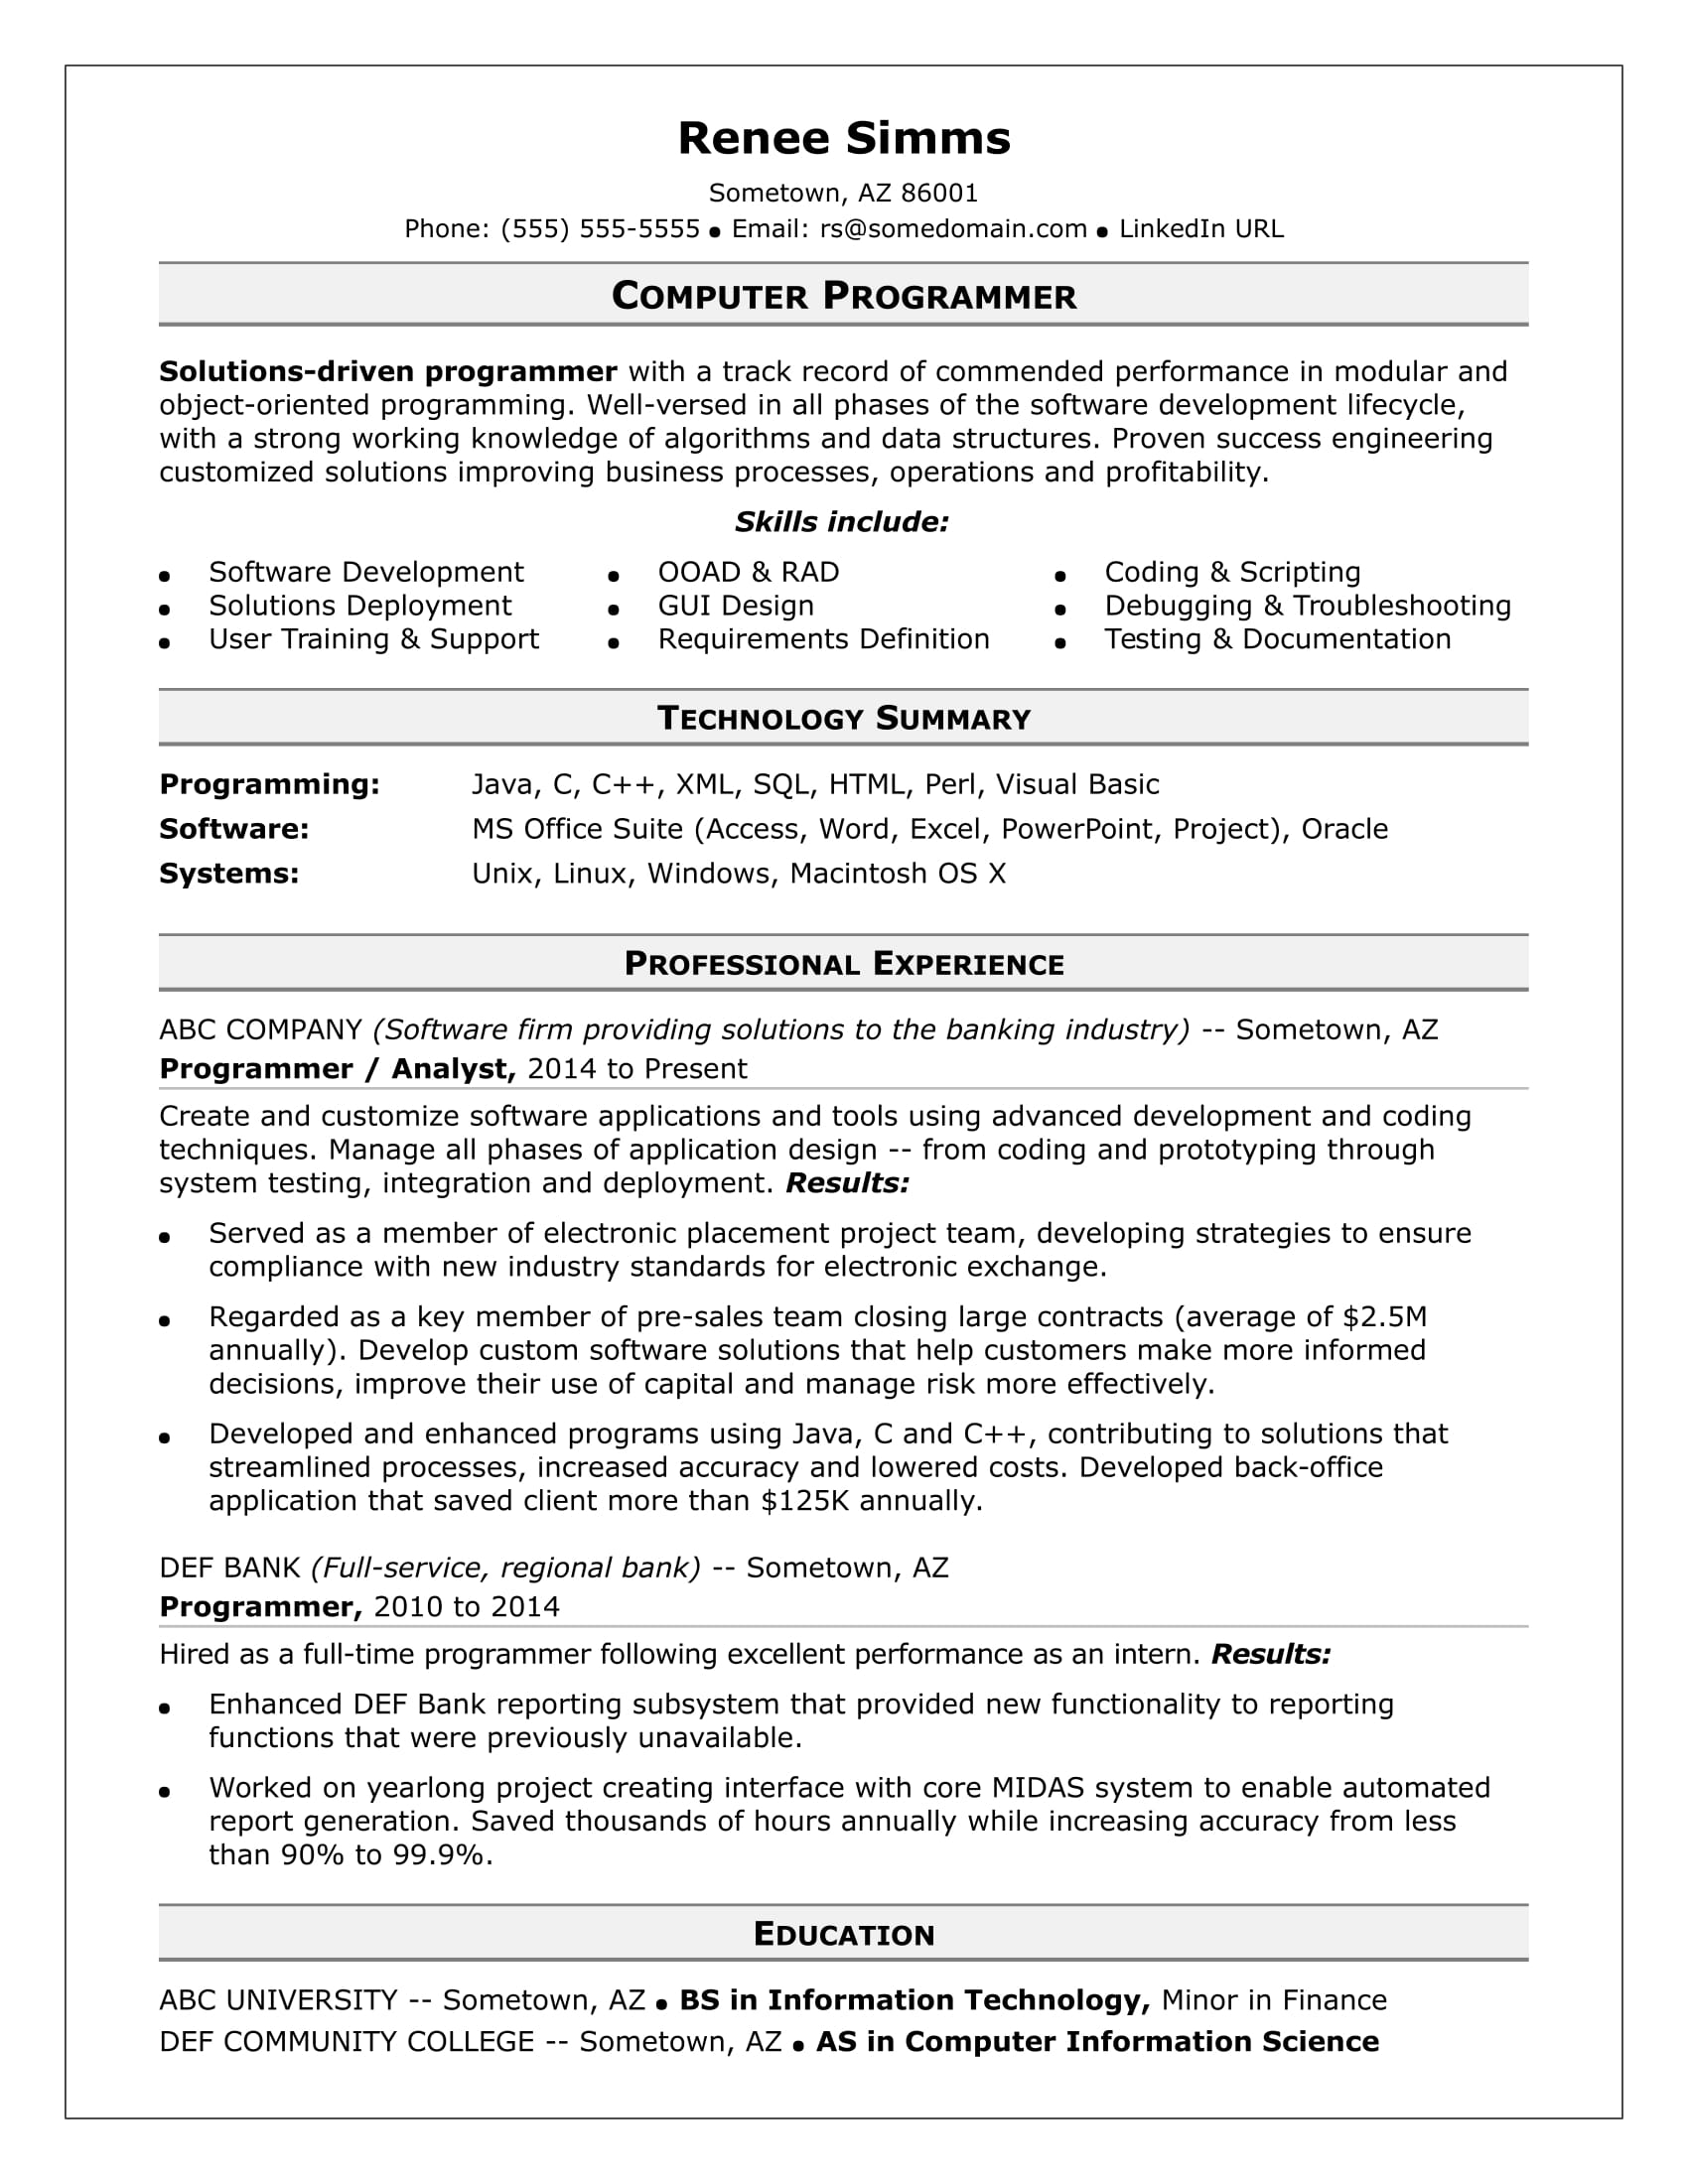 Sample Resume For A Midlevel Computer Programmer